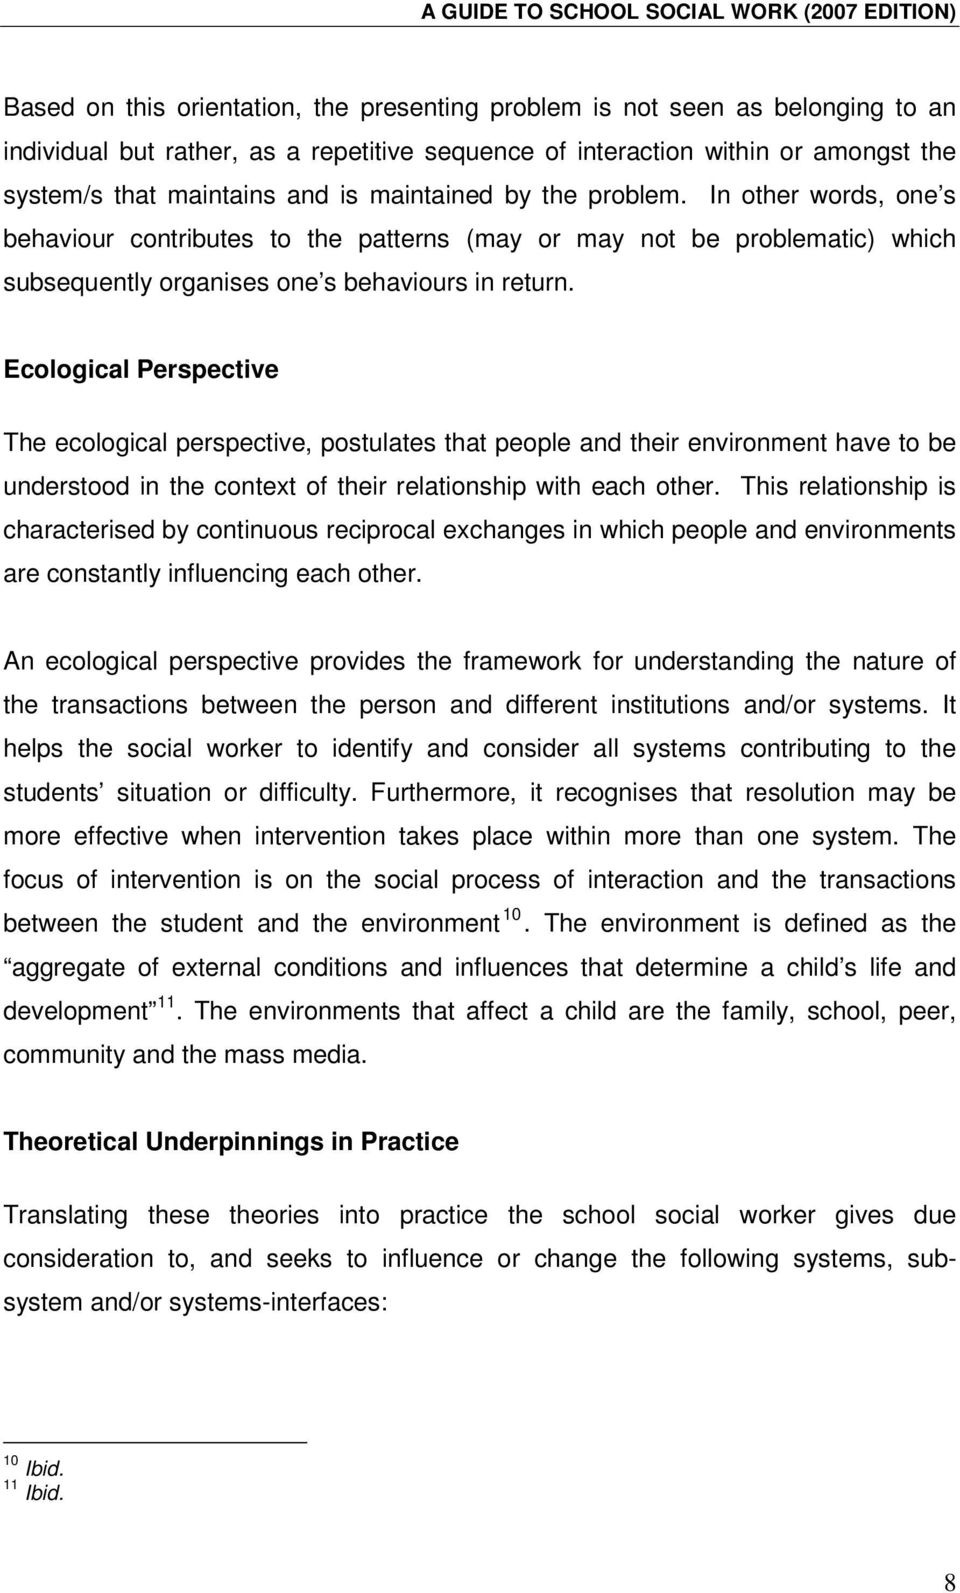 Ecological Perspective The ecological perspective, postulates that people and their environment have to be understood in the context of their relationship with each other.